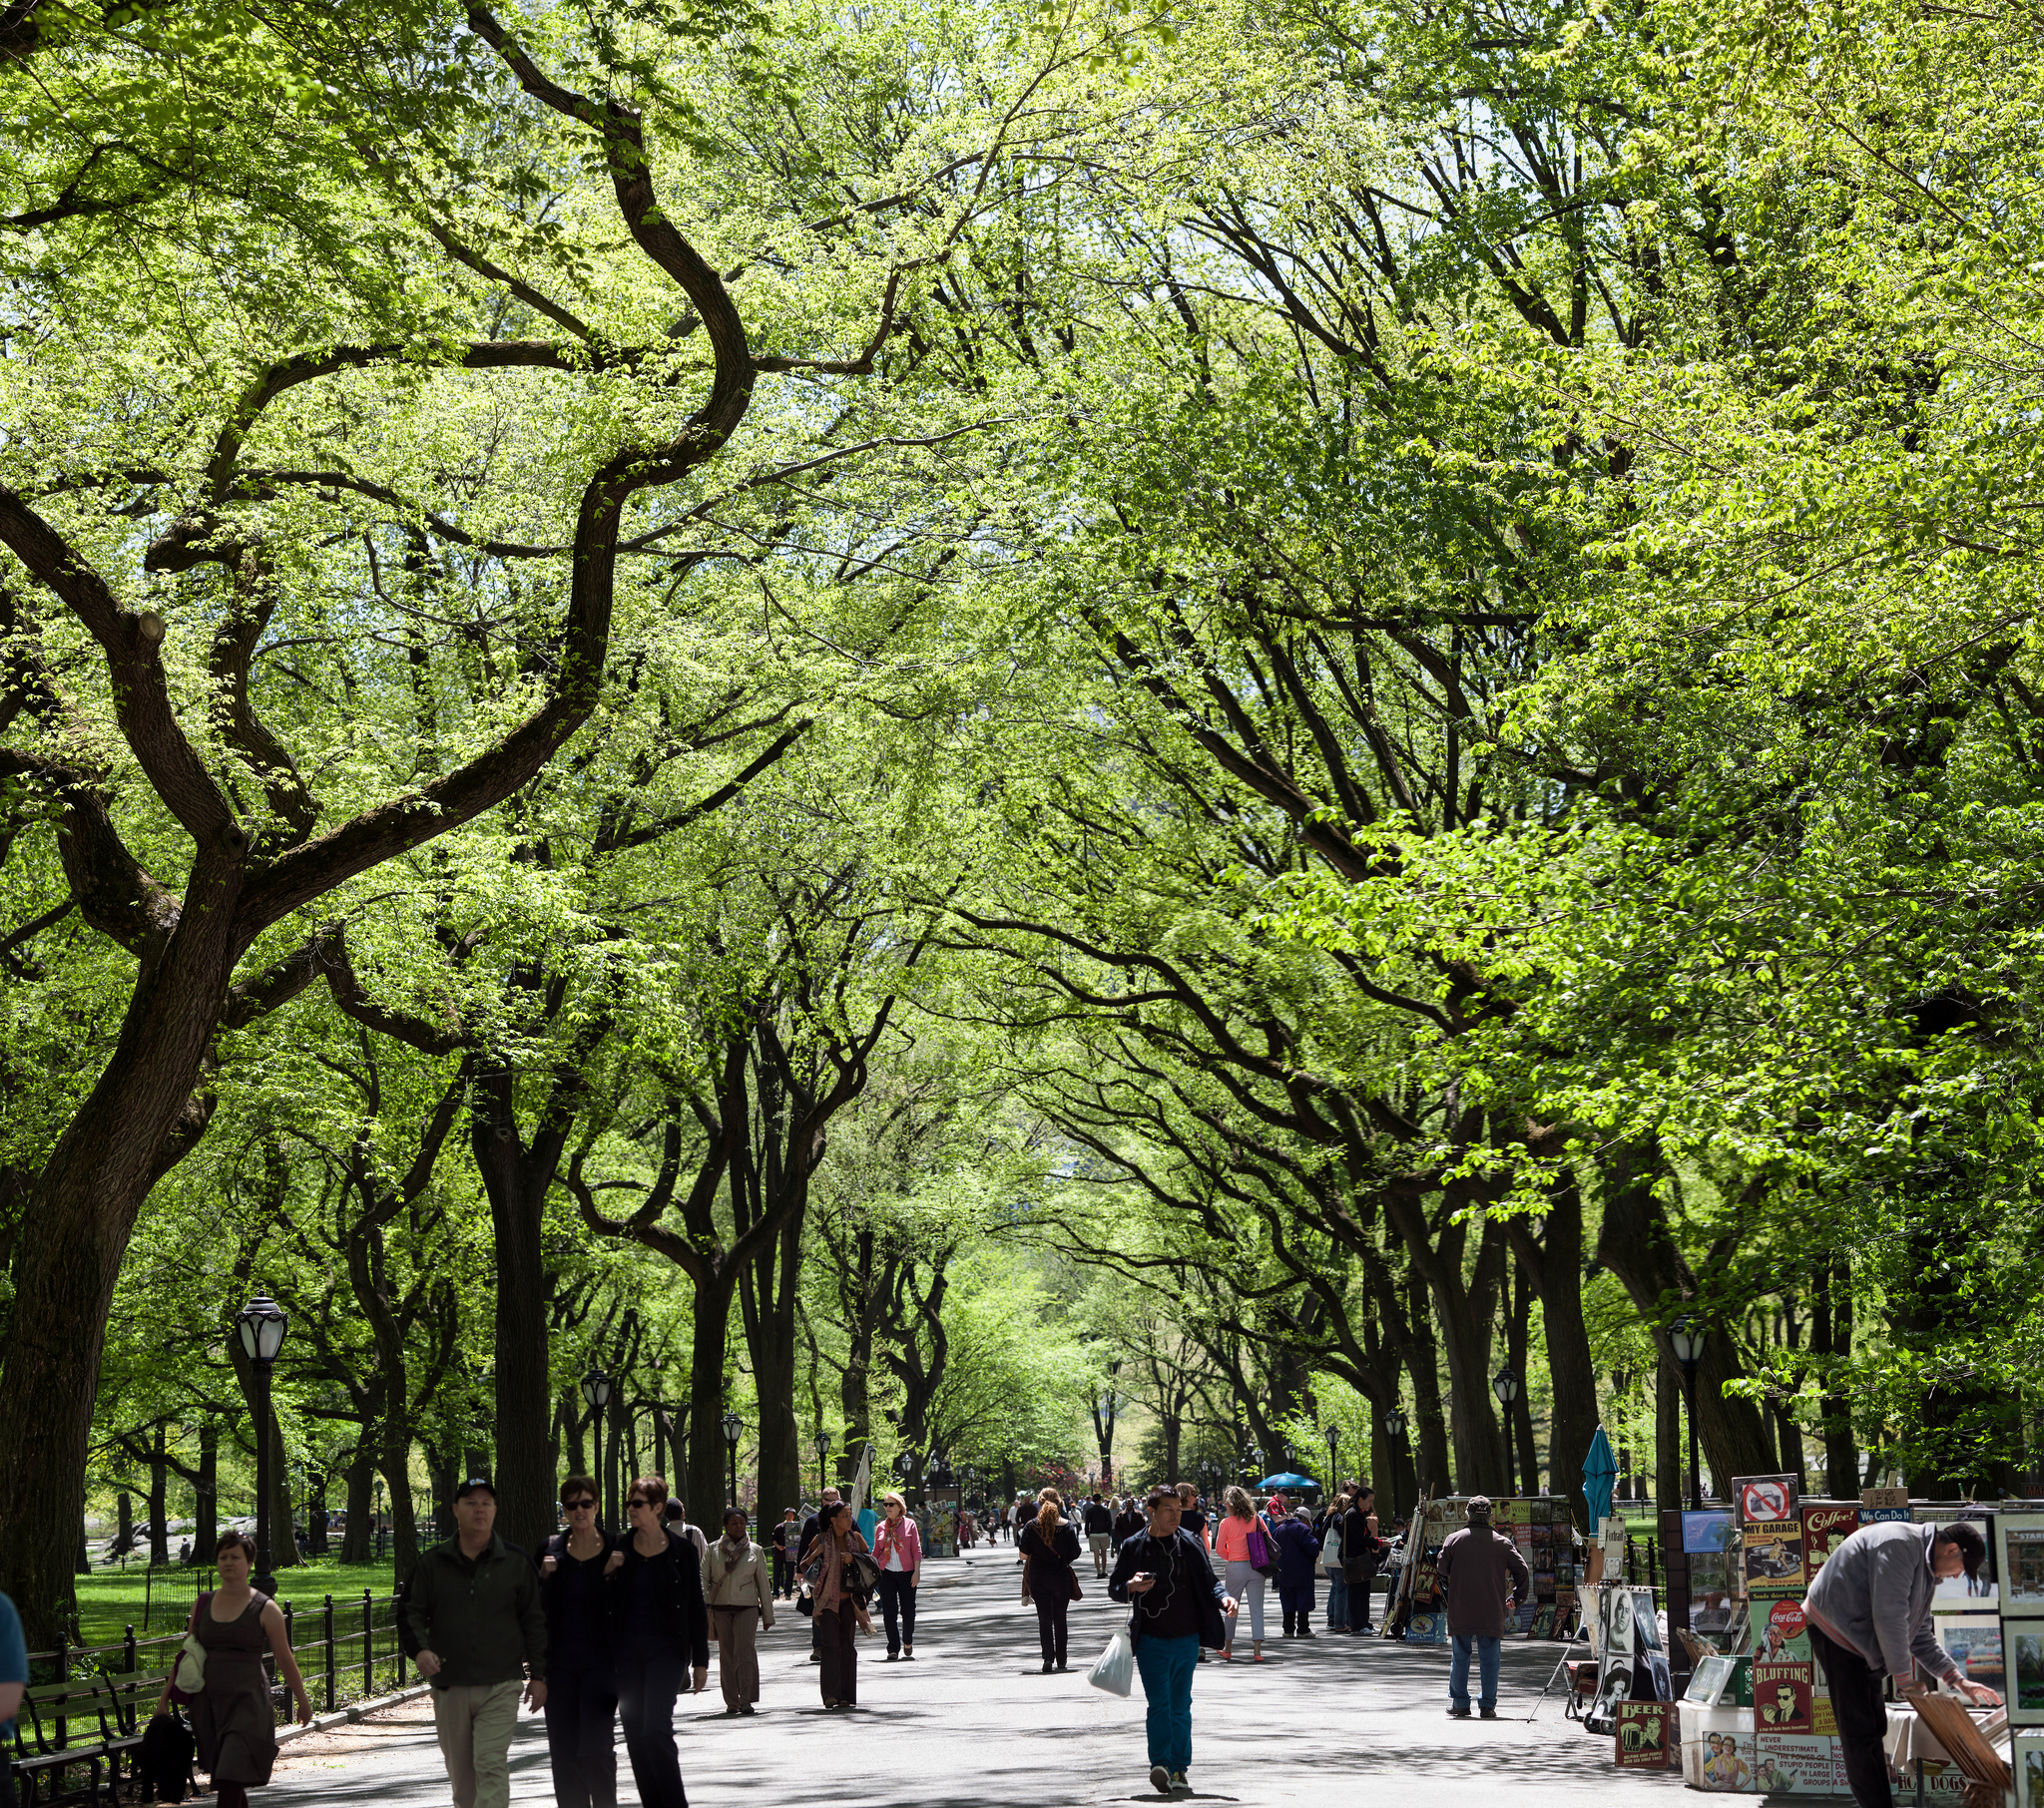 Cetral Park: Urban Park In New York City